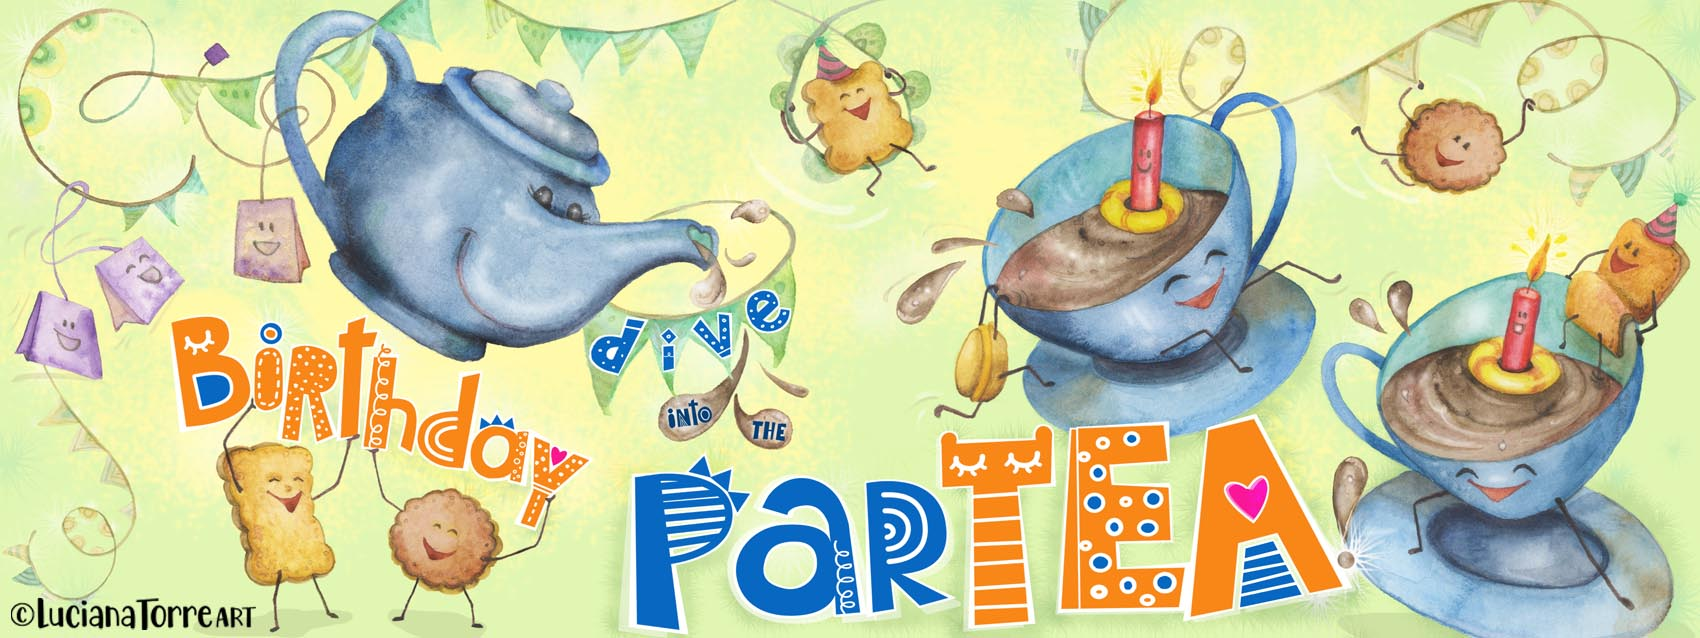 Luciana Torre ART birthday party illustration LOW